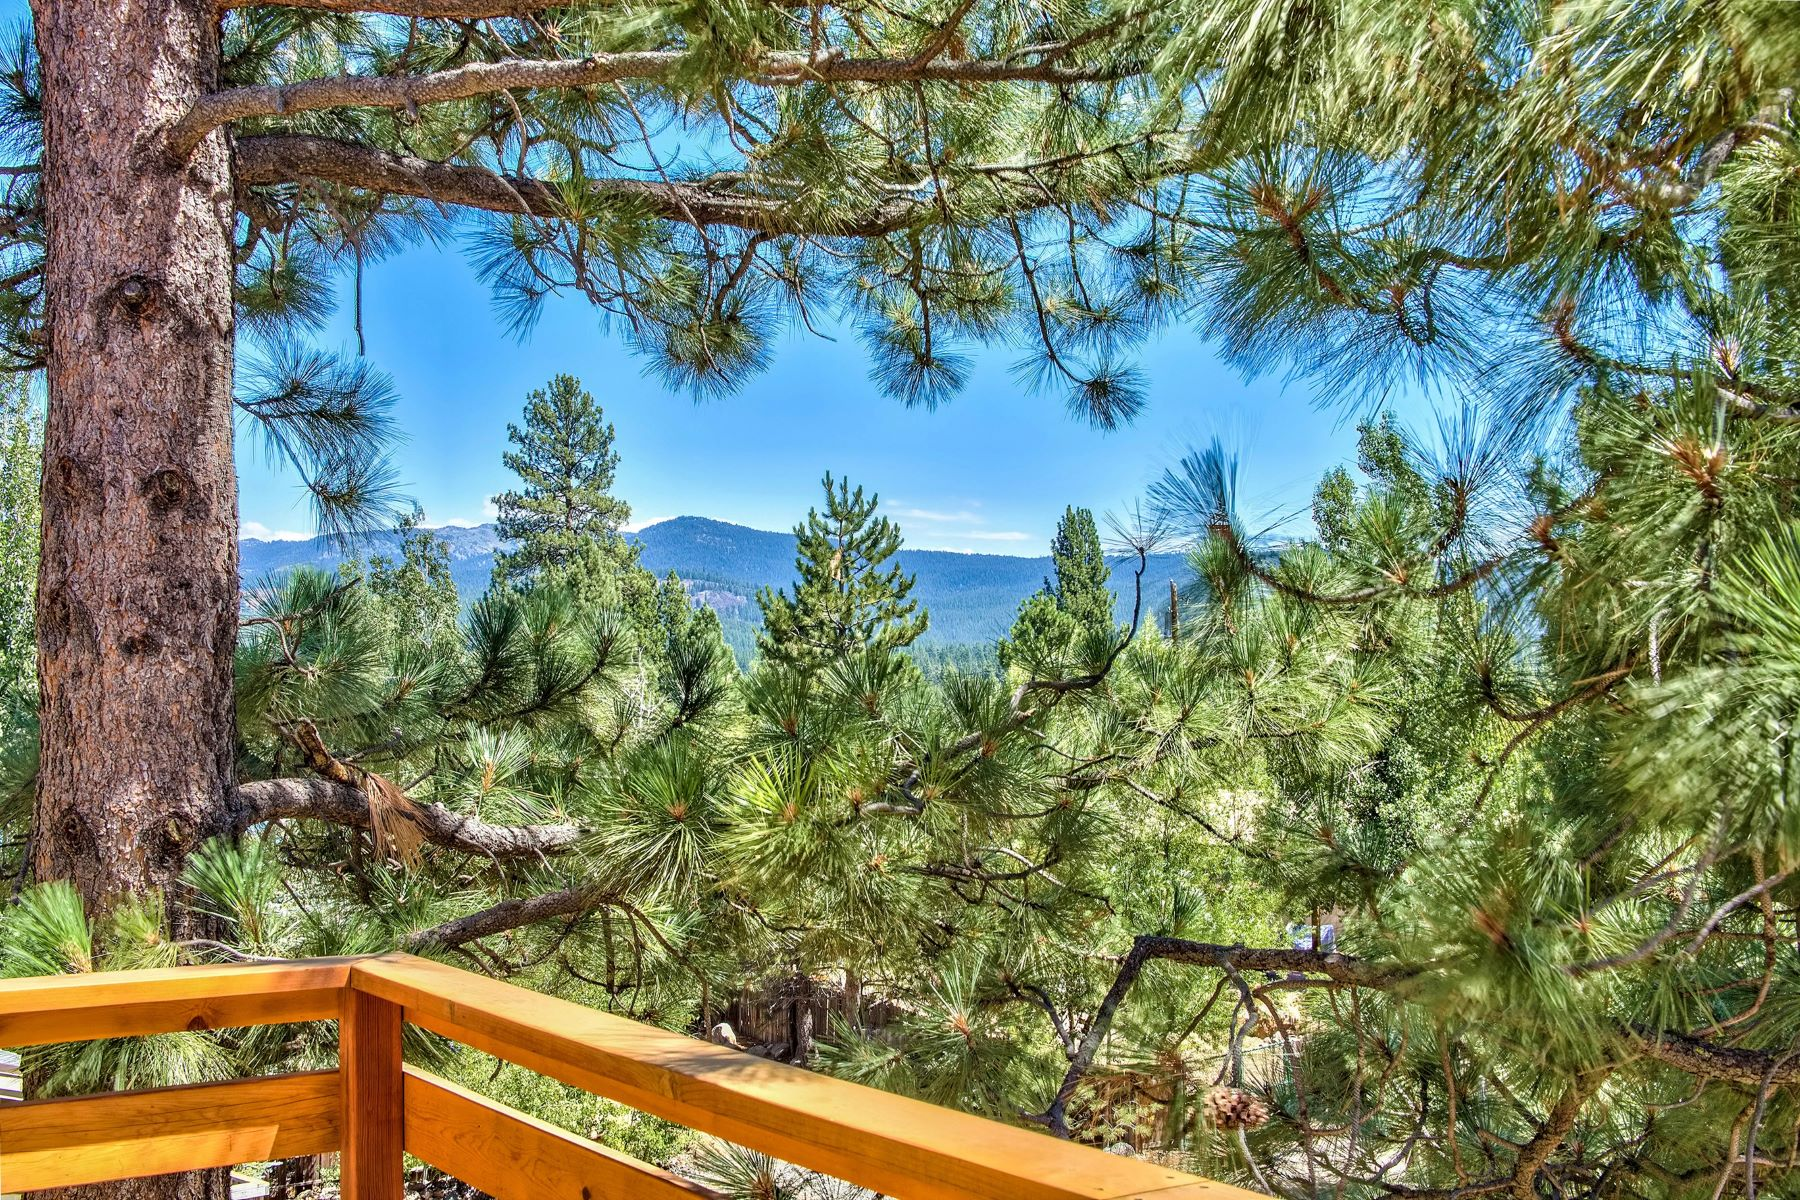 Additional photo for property listing at 11871 Highland Avenue, Truckee, CA 11871 Highland Avenue Truckee, California 96161 United States